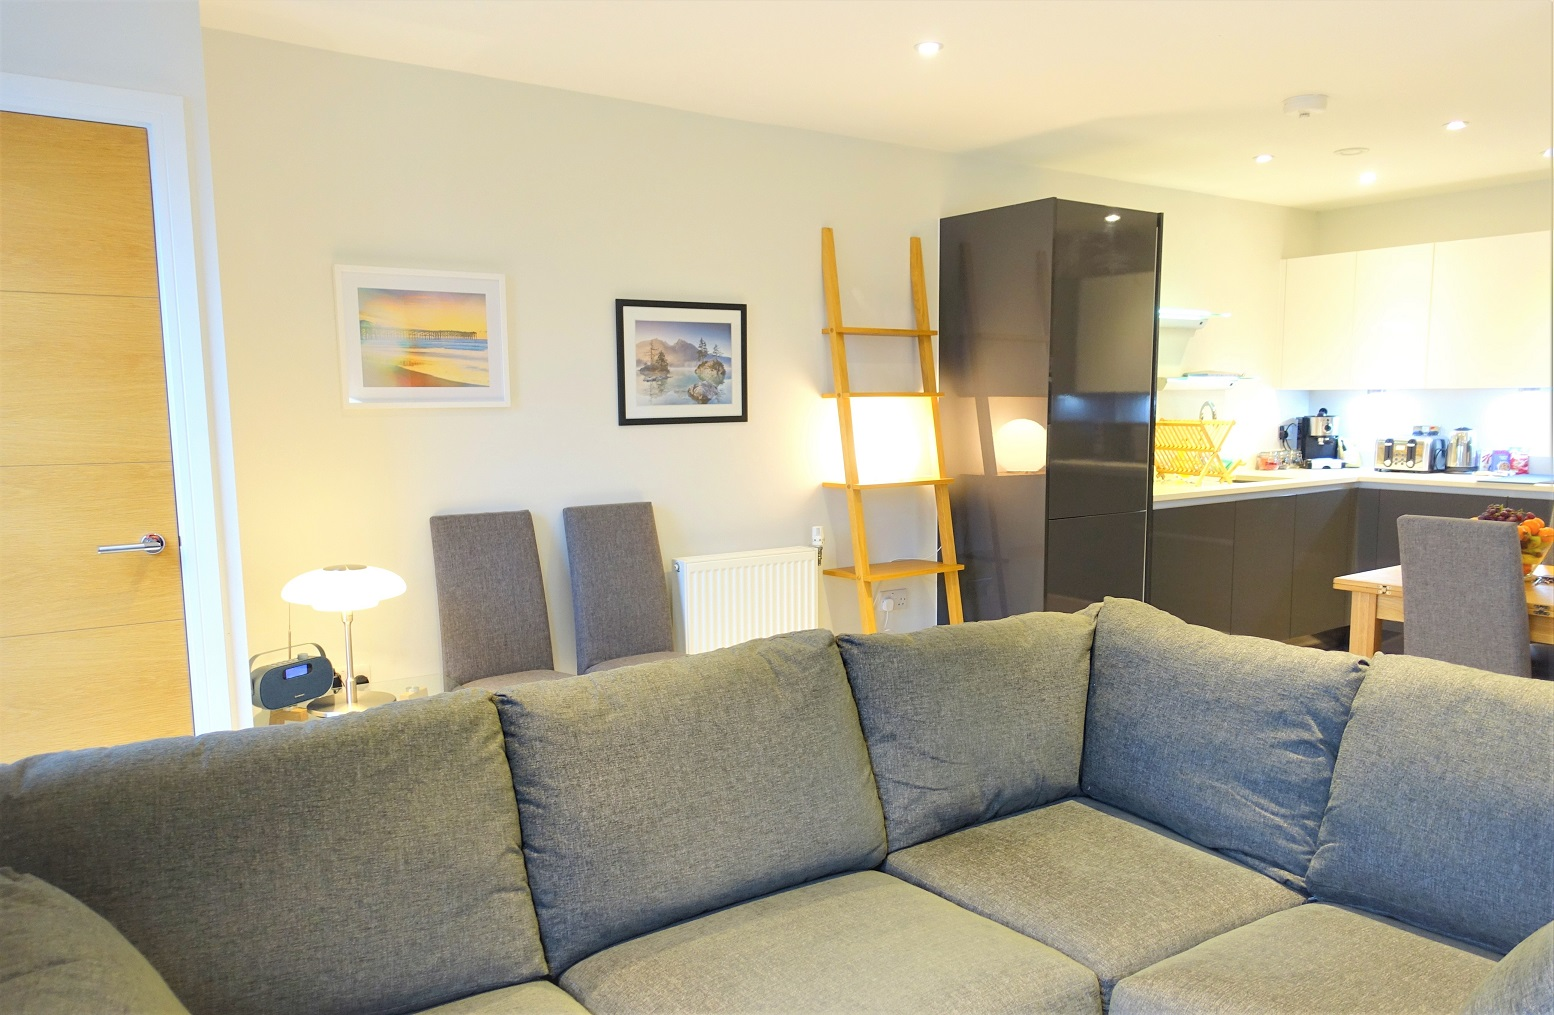 Sofa at Teddington Apartments, Teddington, London - Citybase Apartments